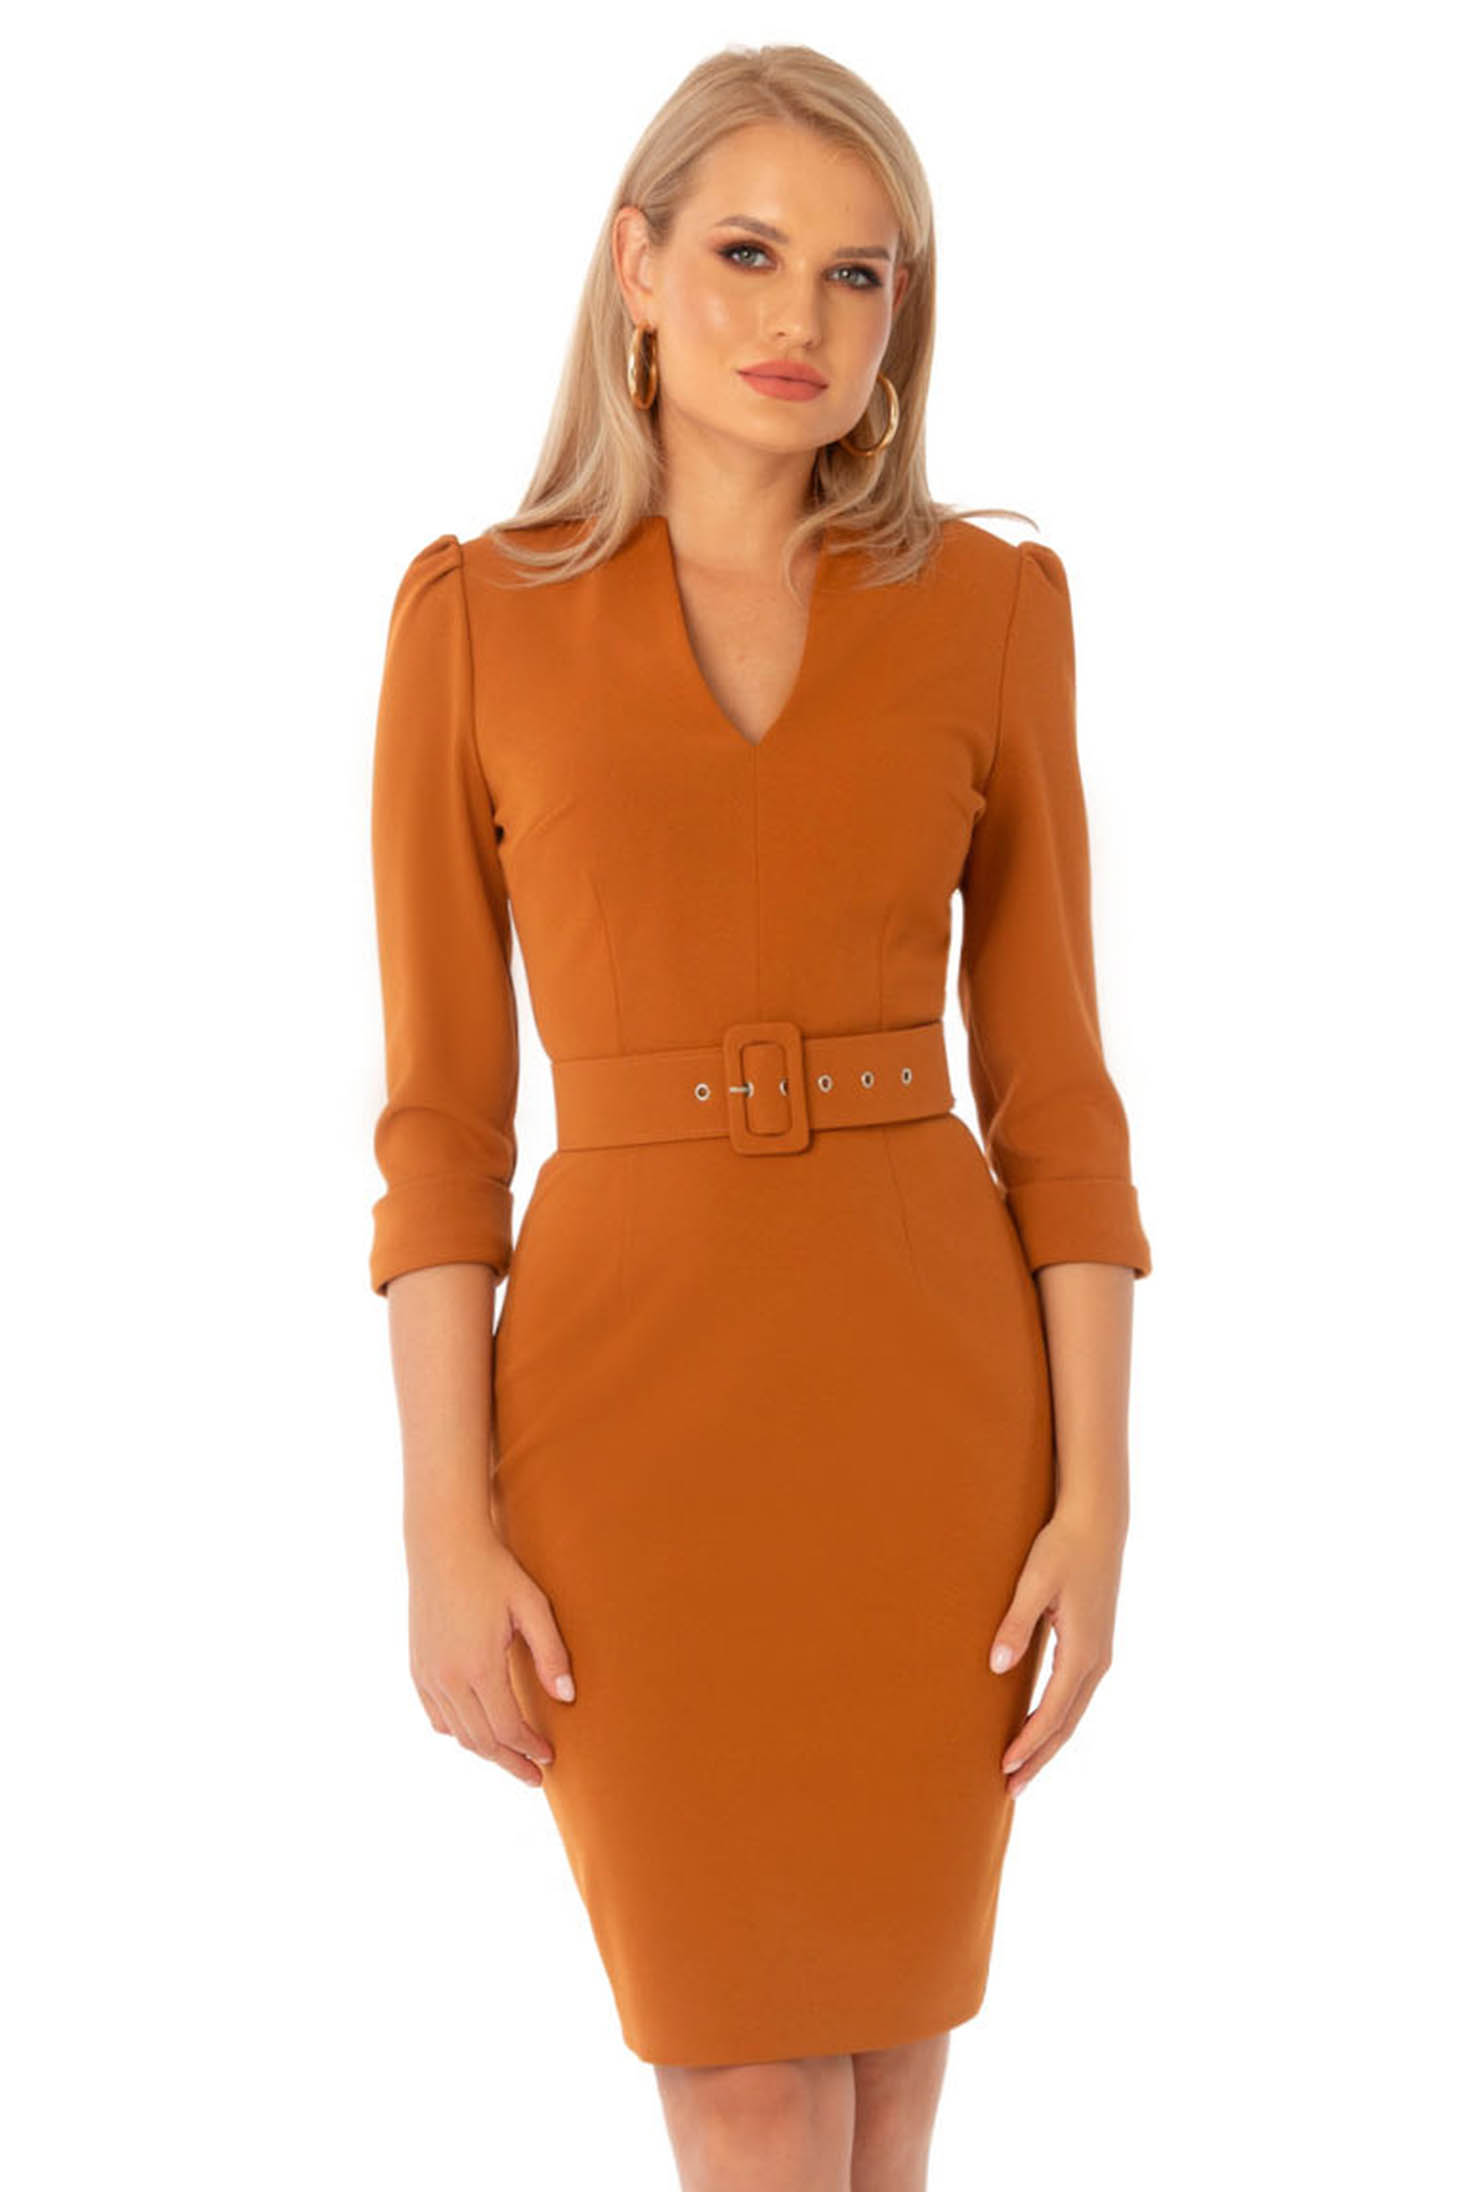 Bricky dress office midi pencil with v-neckline accessorized with belt